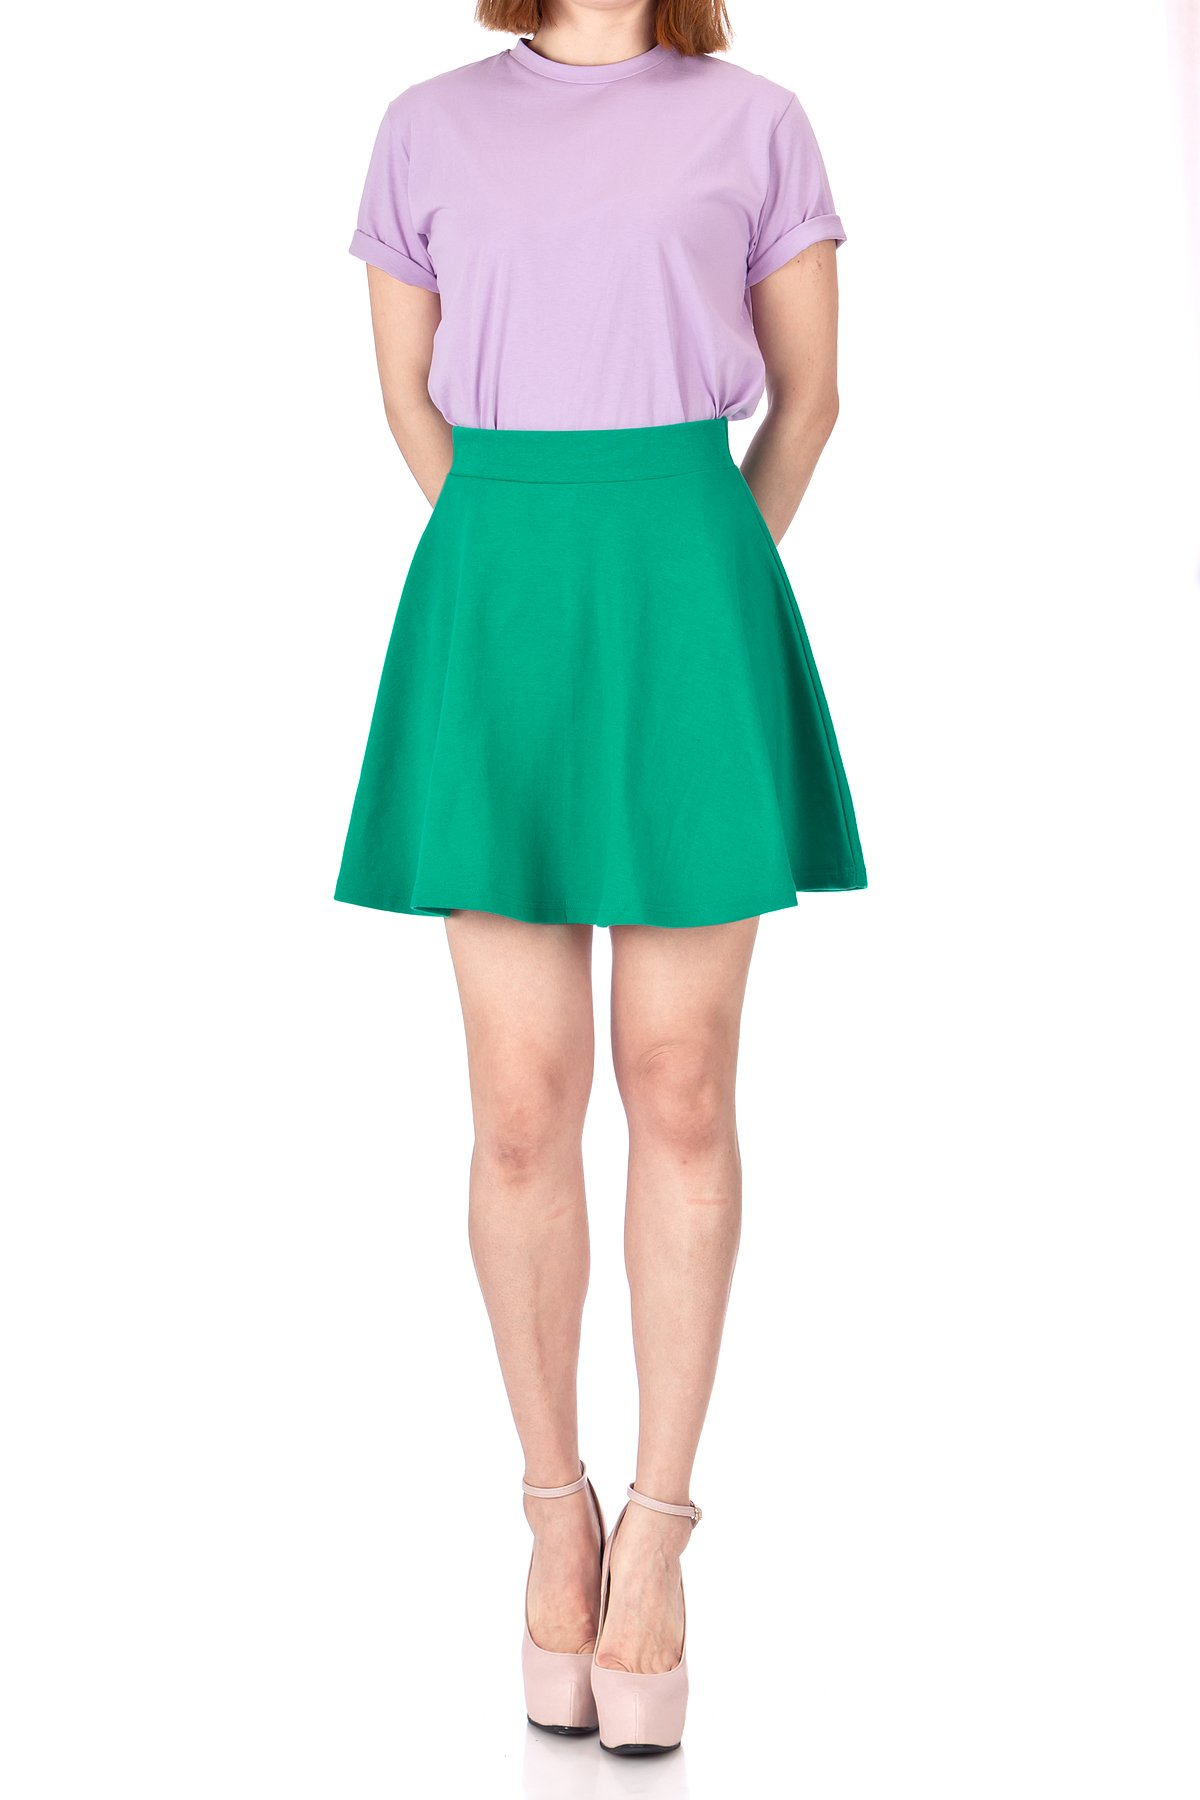 Basic Solid Stretchy Cotton High Waist A line Flared Skater Mini Skirt Green 03